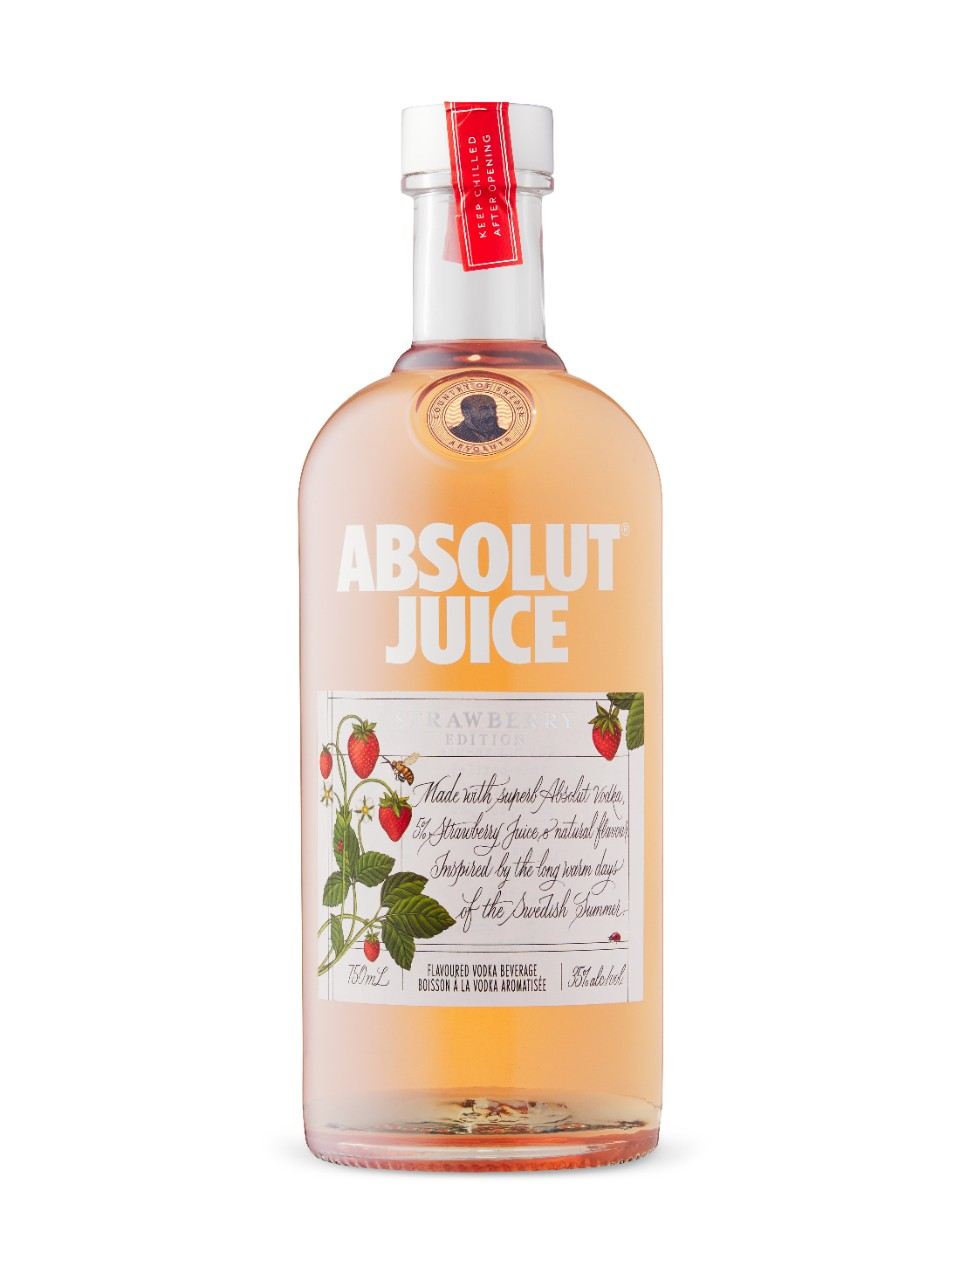 Absolut Juice Strawberry Edition from LCBO